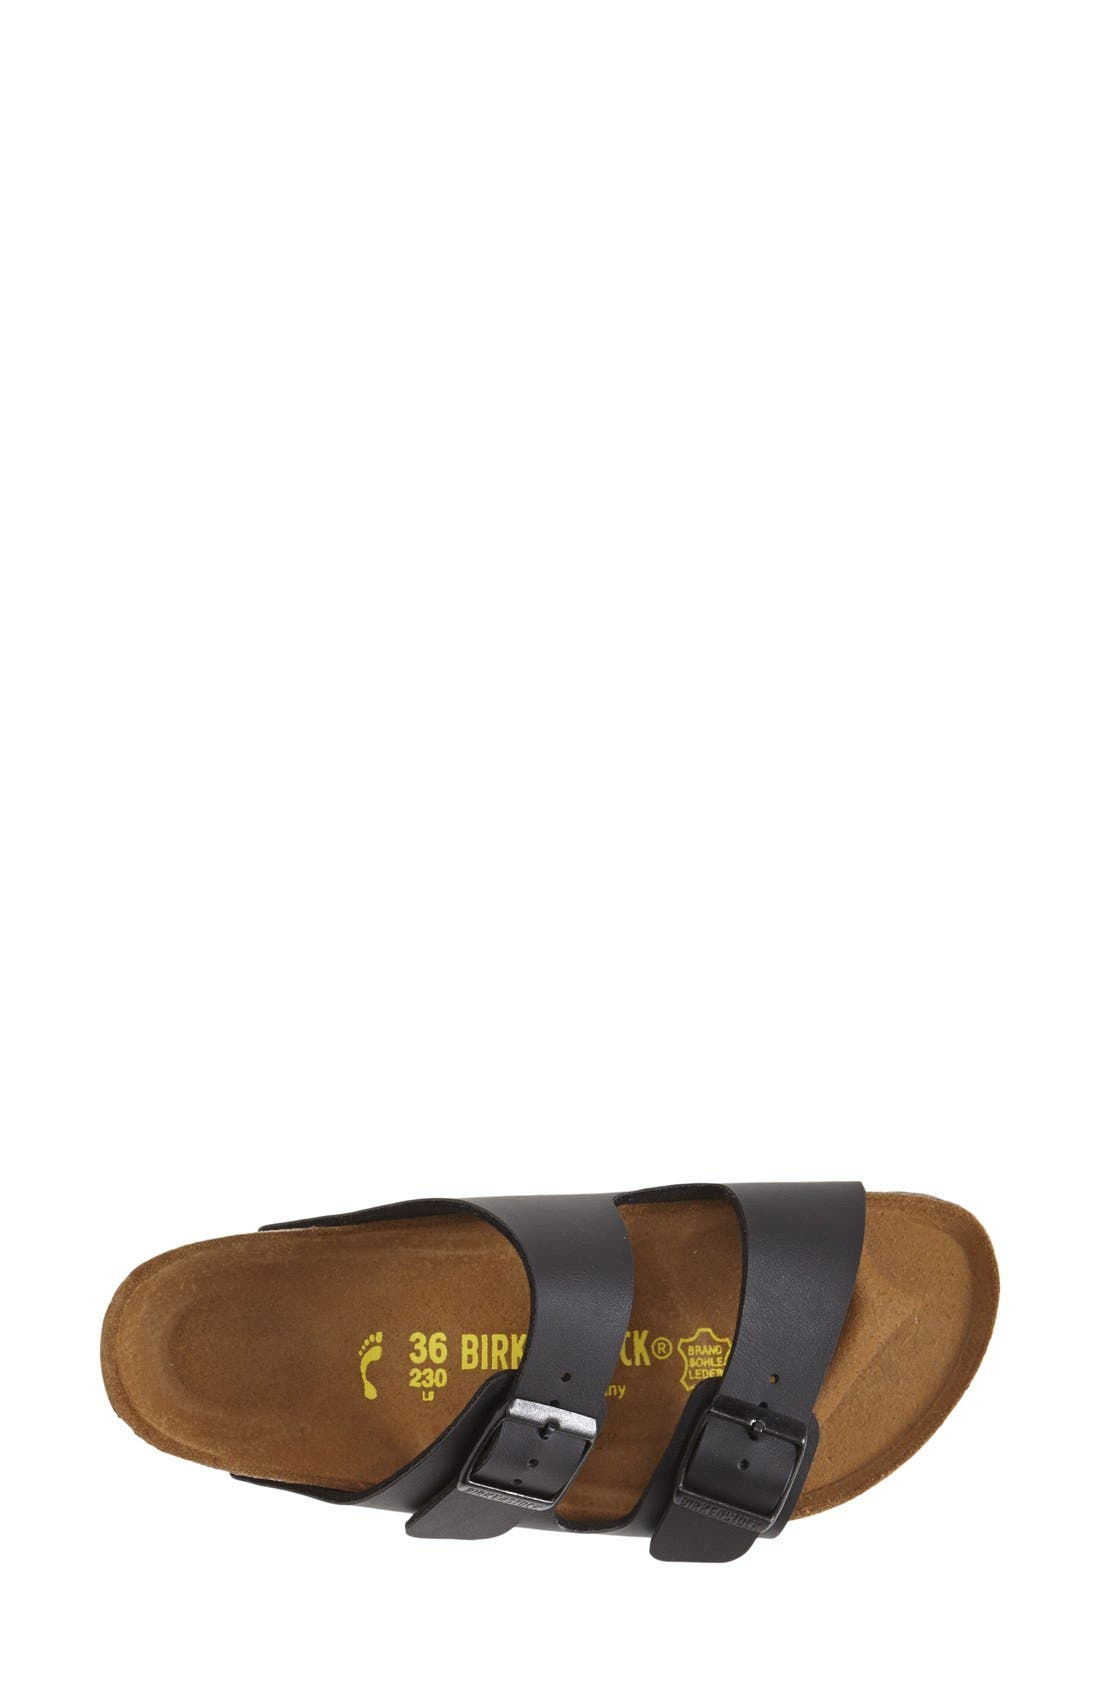 Alternate Image 3  - Birkenstock Arizona Birko-Flor Sandal (Women)